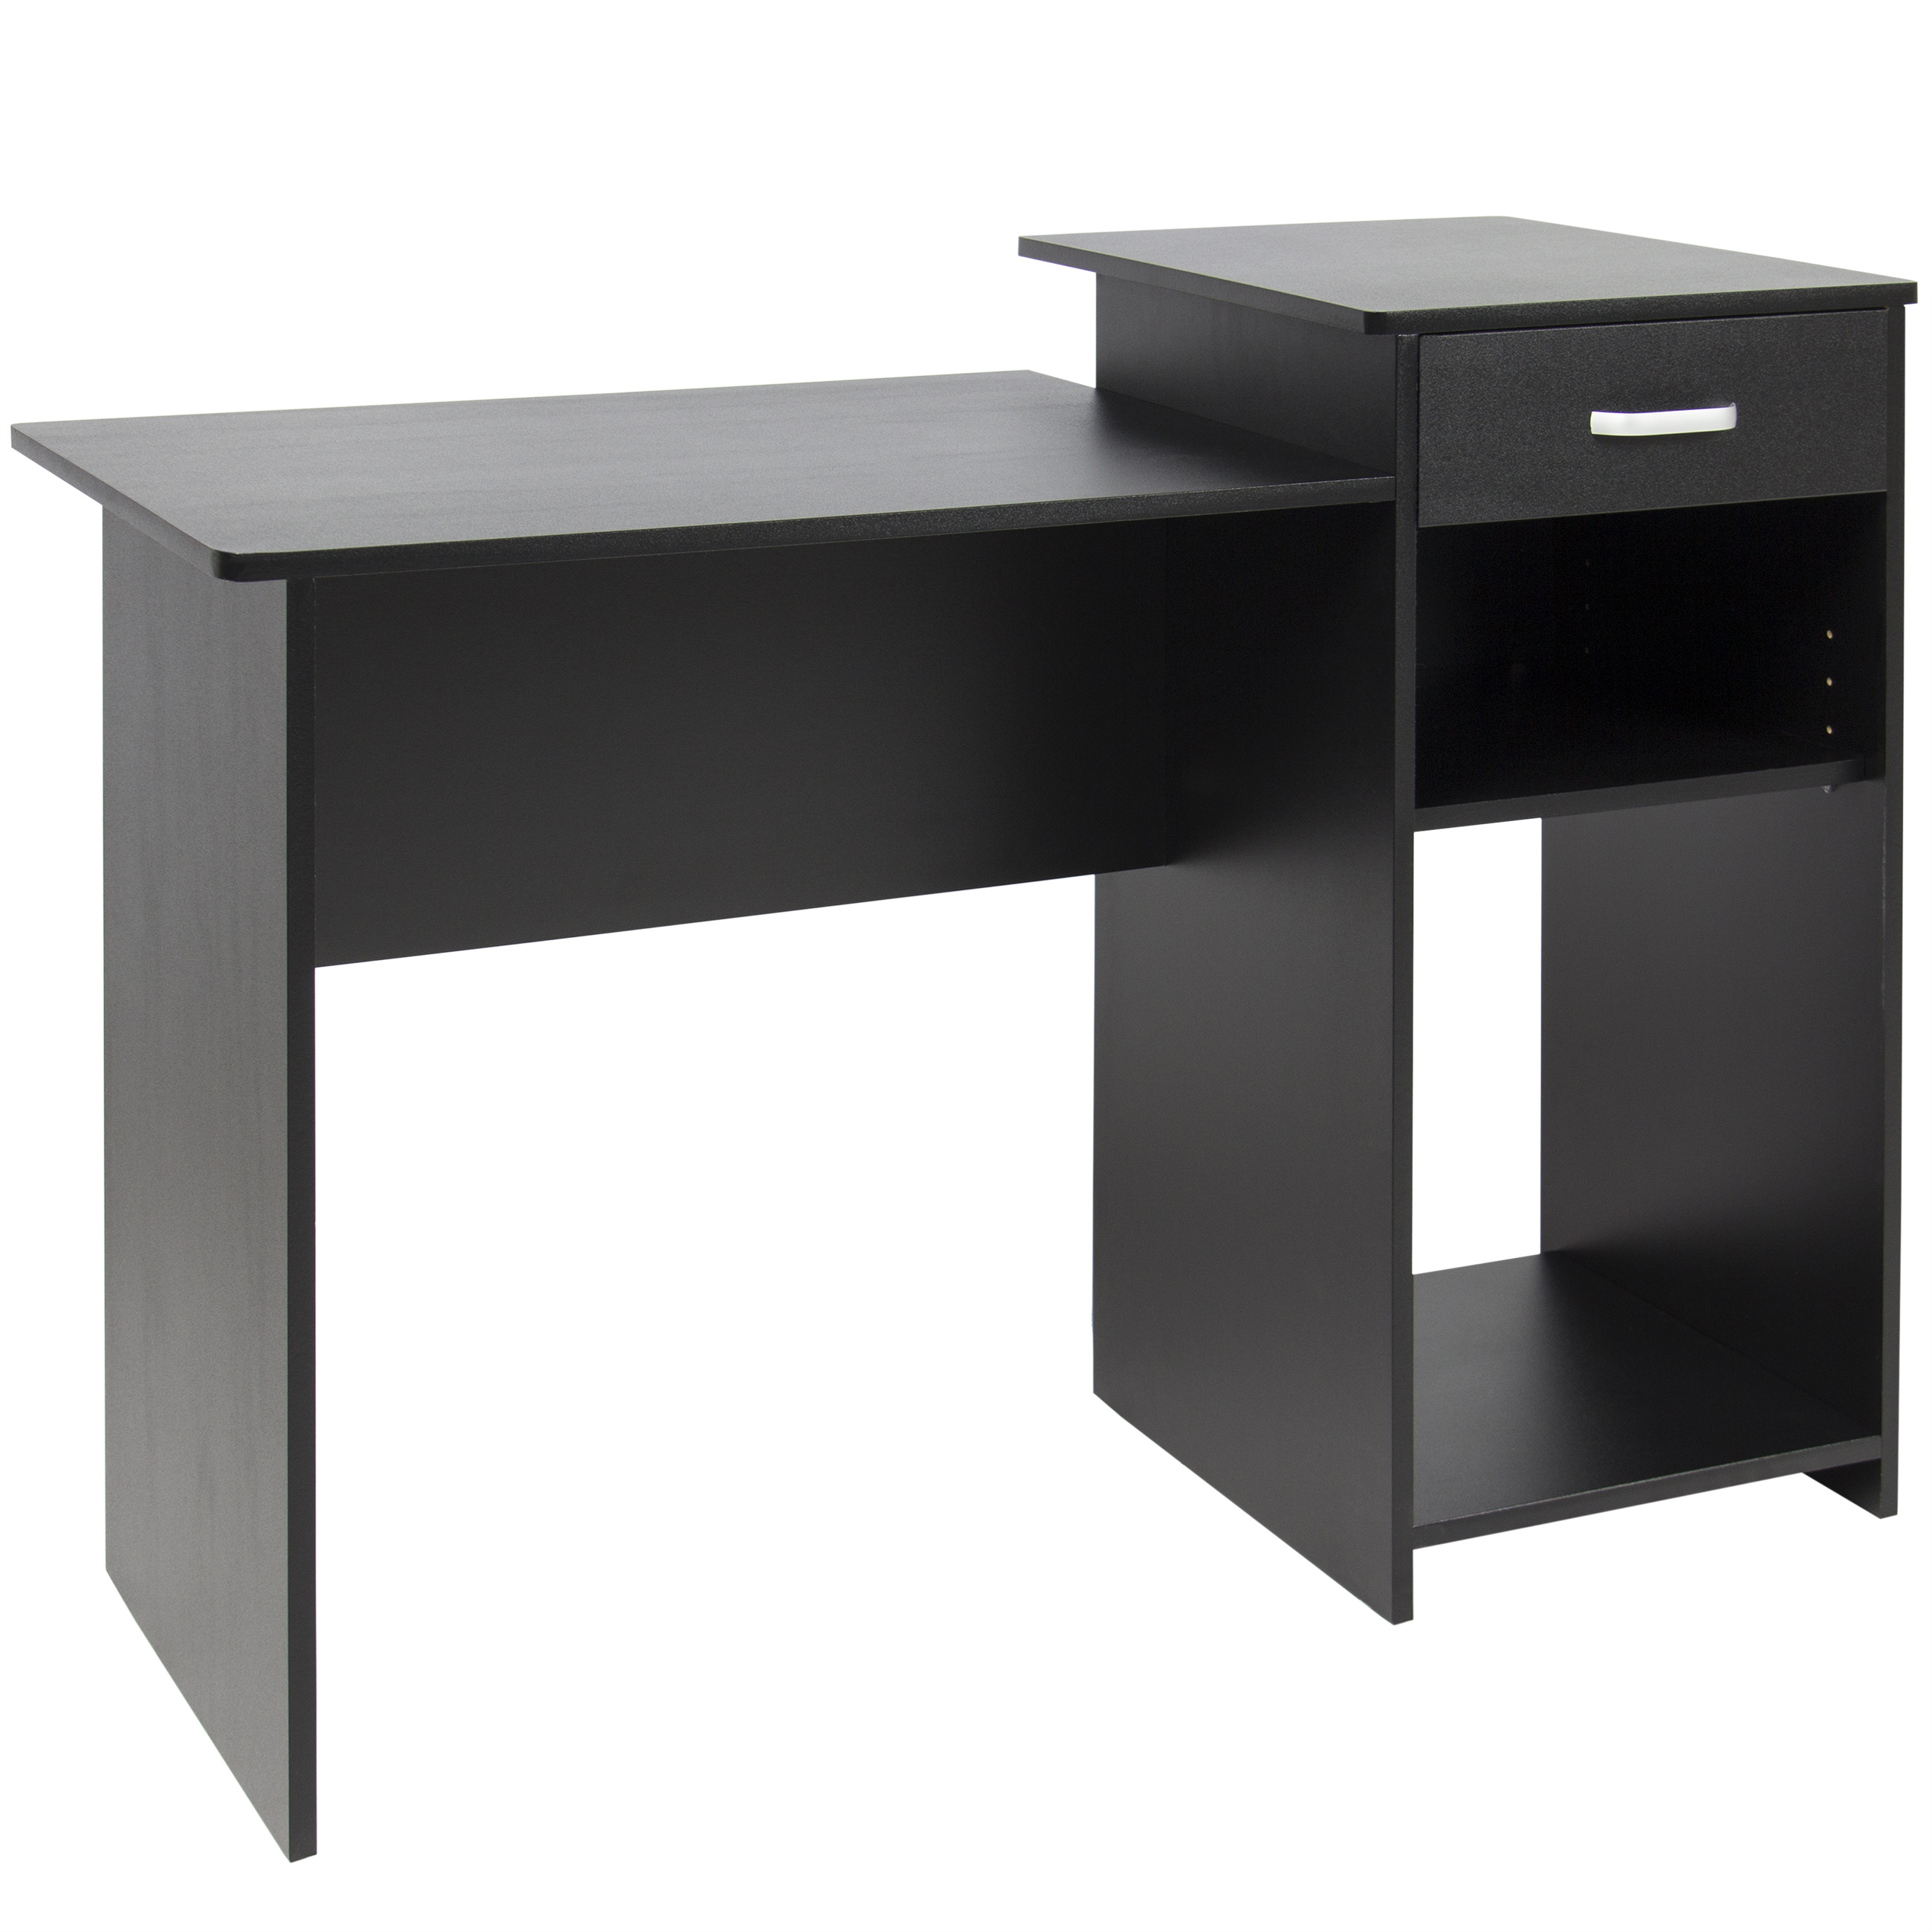 Best Choice Products Wood Computer Desk Workstation Table For Home, Office,  Dorm W/ Drawer, Adjustable Shelf   Black   Walmart.com